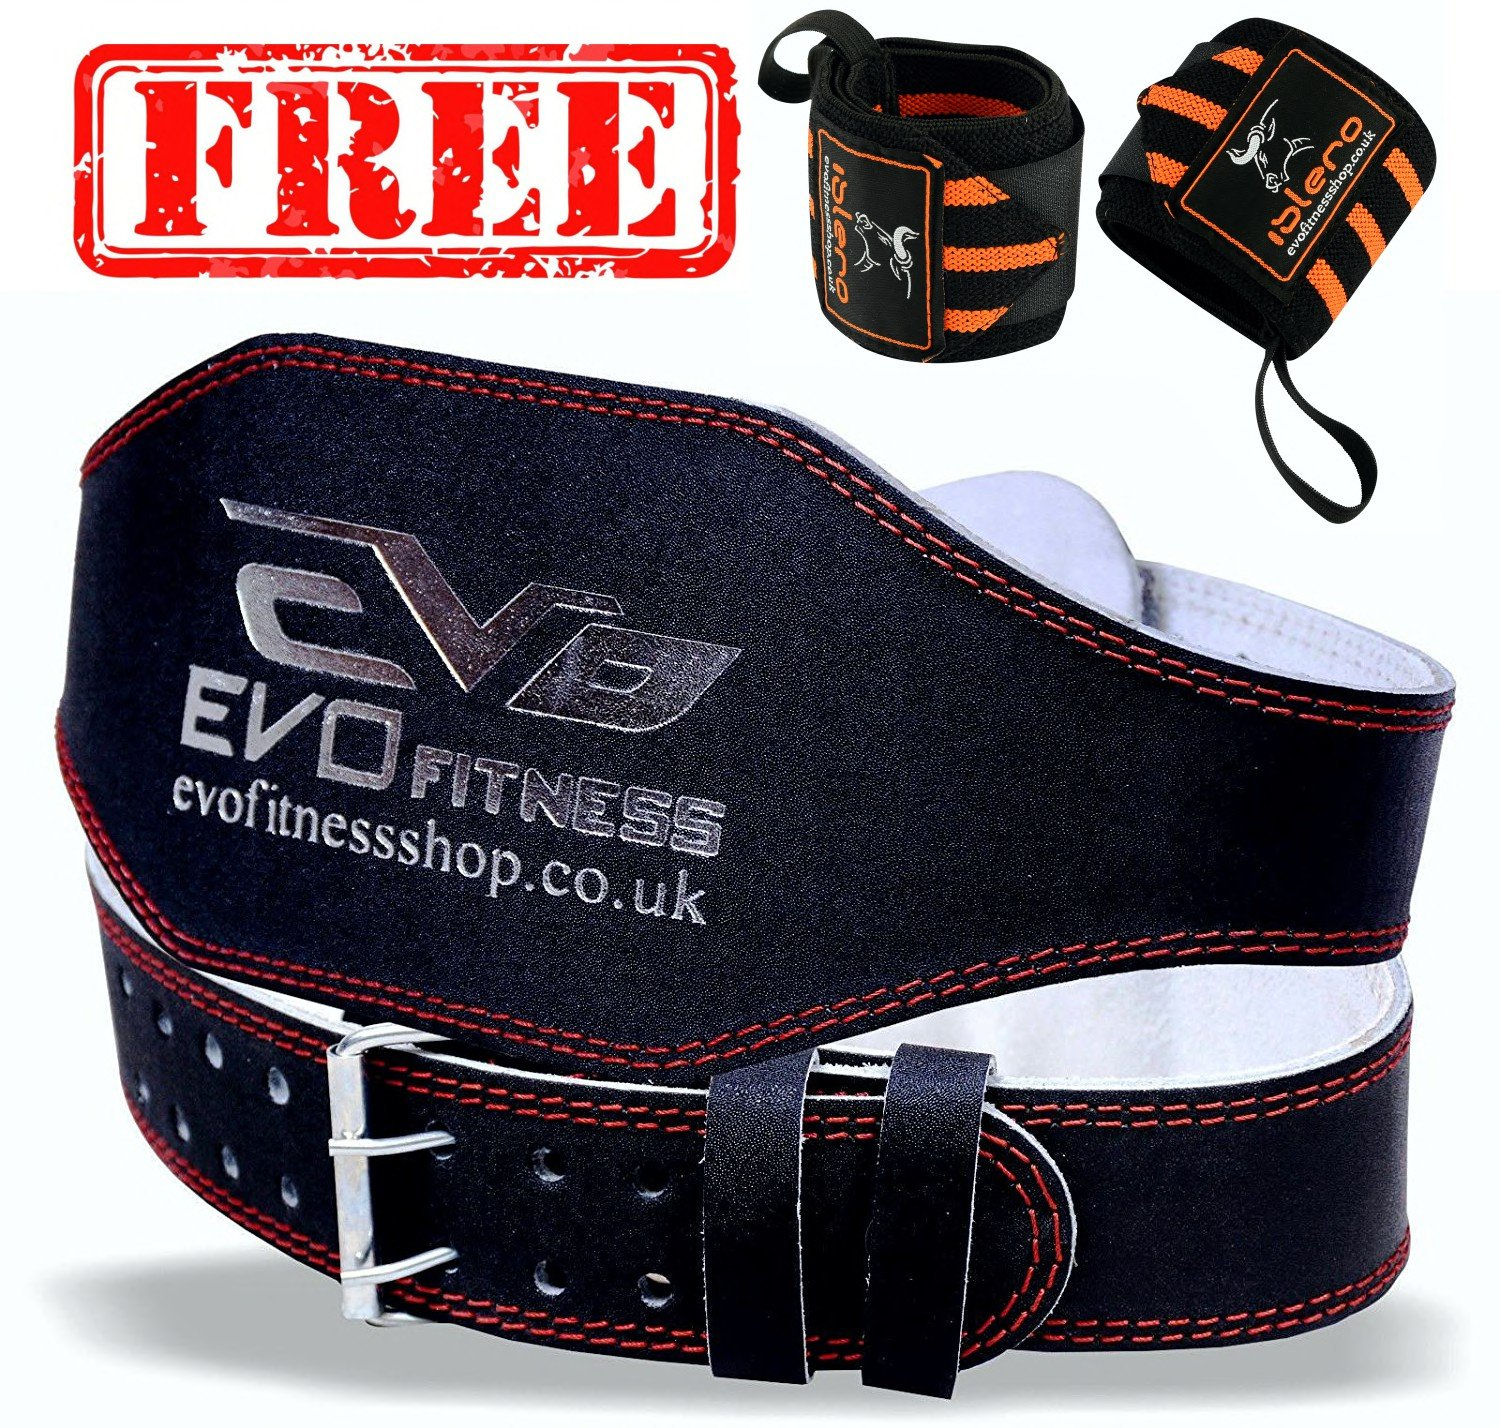 EVO Fitness 4 Pure Leather Gym Belts FREE Weightlifting Straps Wrist Wraps Back Support Bodybuilding